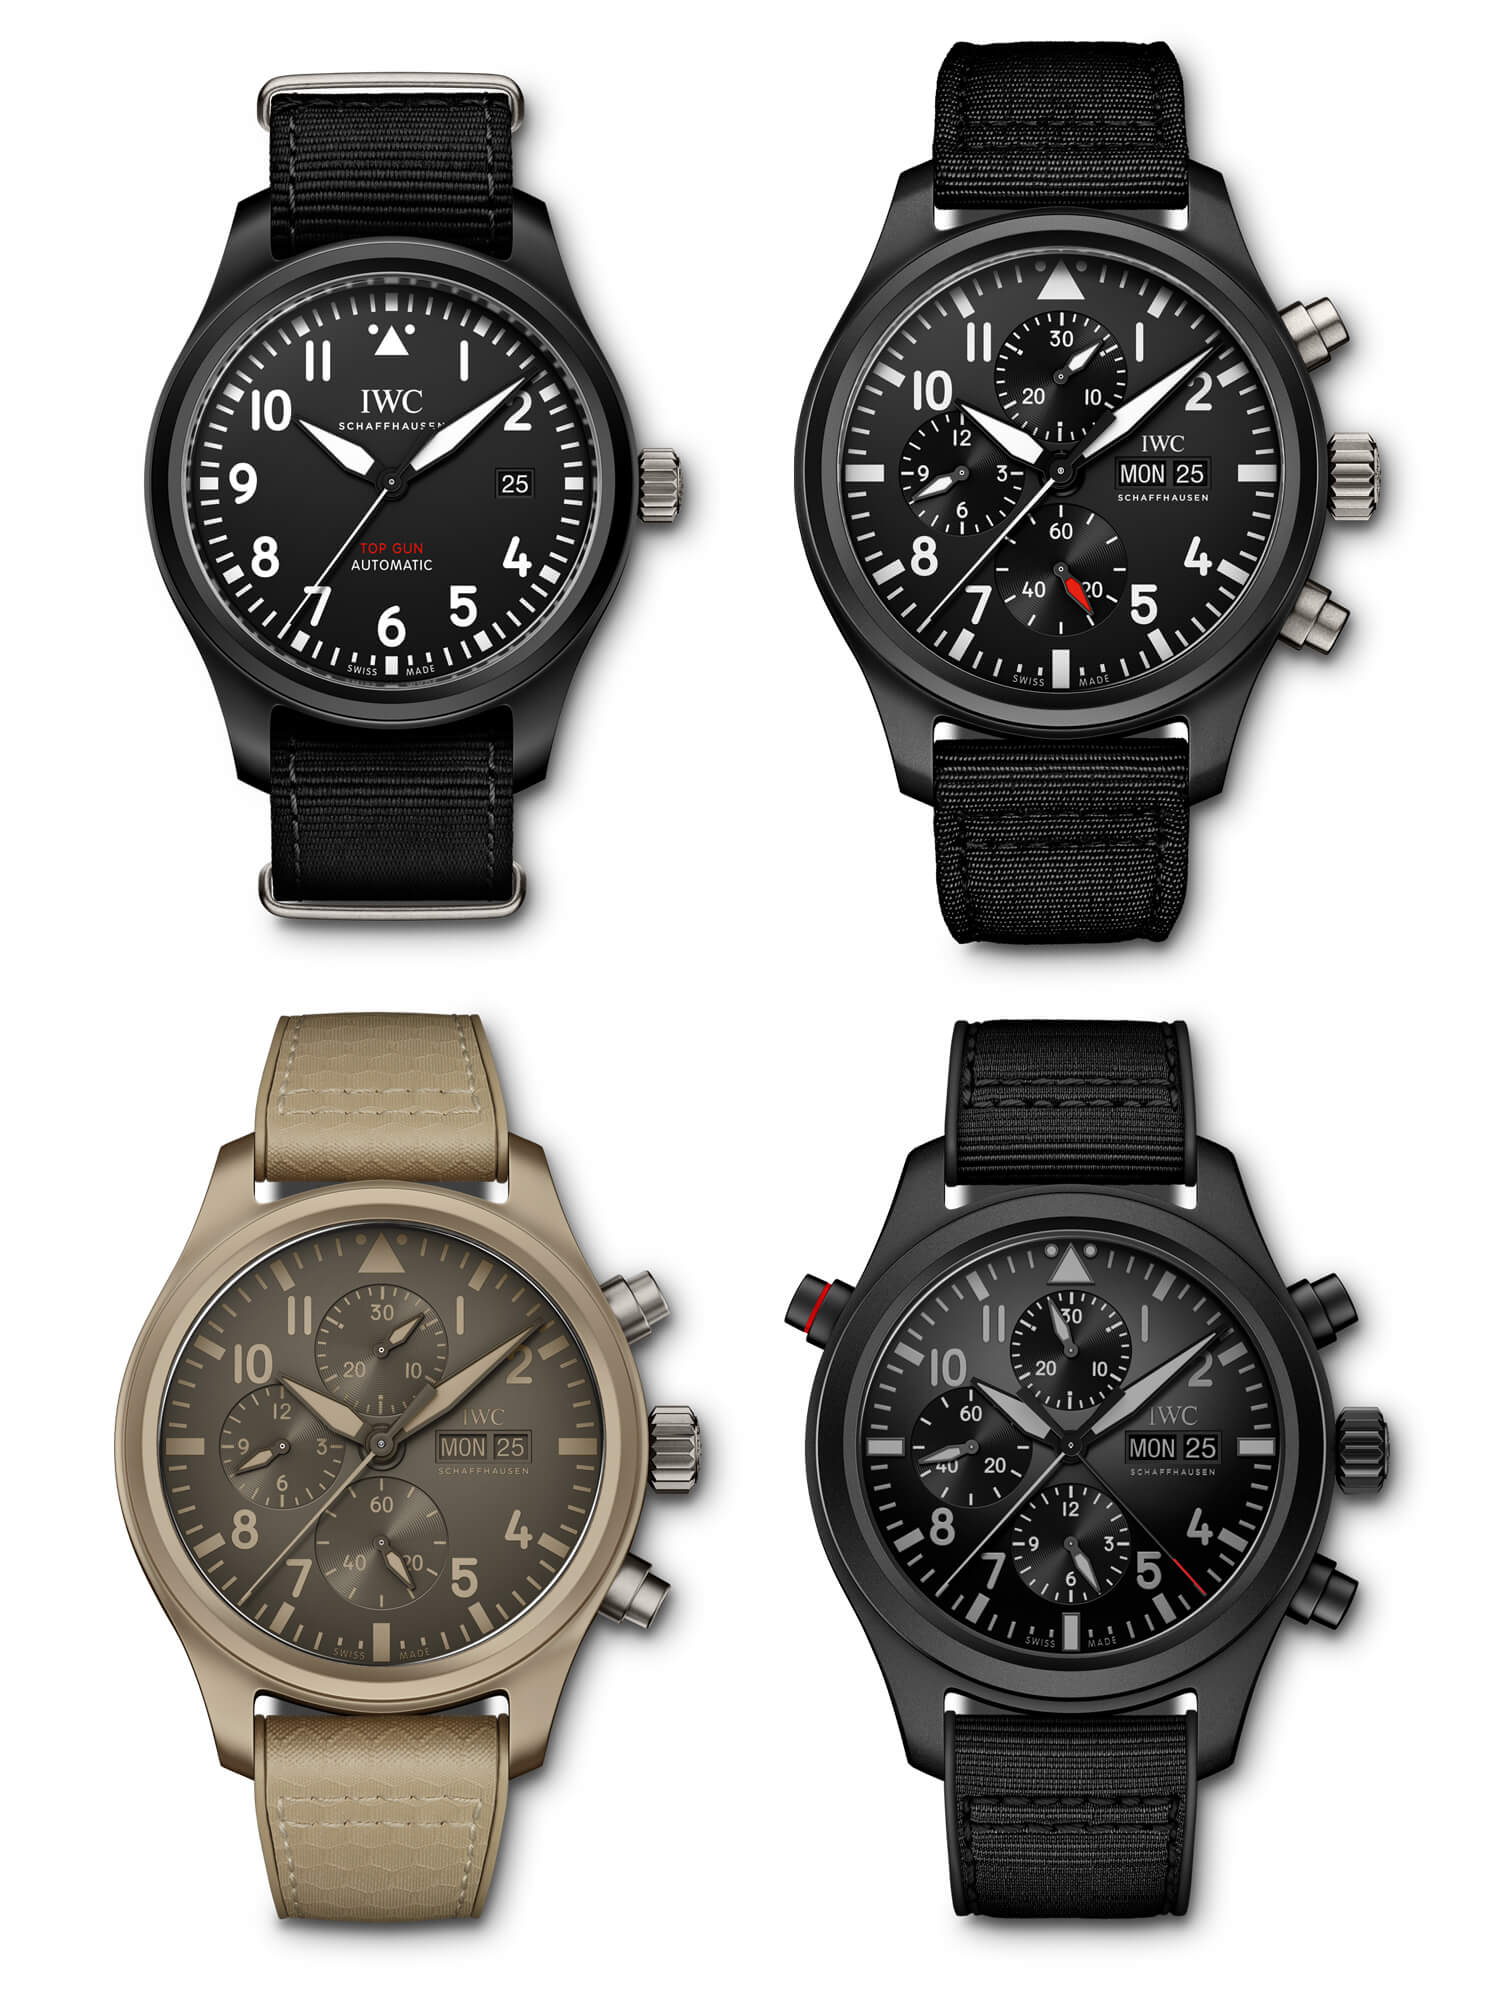 "IWC Pilot's Watch Automatic TOP GUN IW326901, IWC Pilot's Watch Chronograph TOP GUN IW389101, IWC Pilot's Watch Chronograph TOP GUN Edition ""Mojave Desert"" IW389103, IWC Pilot's Watch Double Chronograph TOP GUN Ceratanium IW371815"